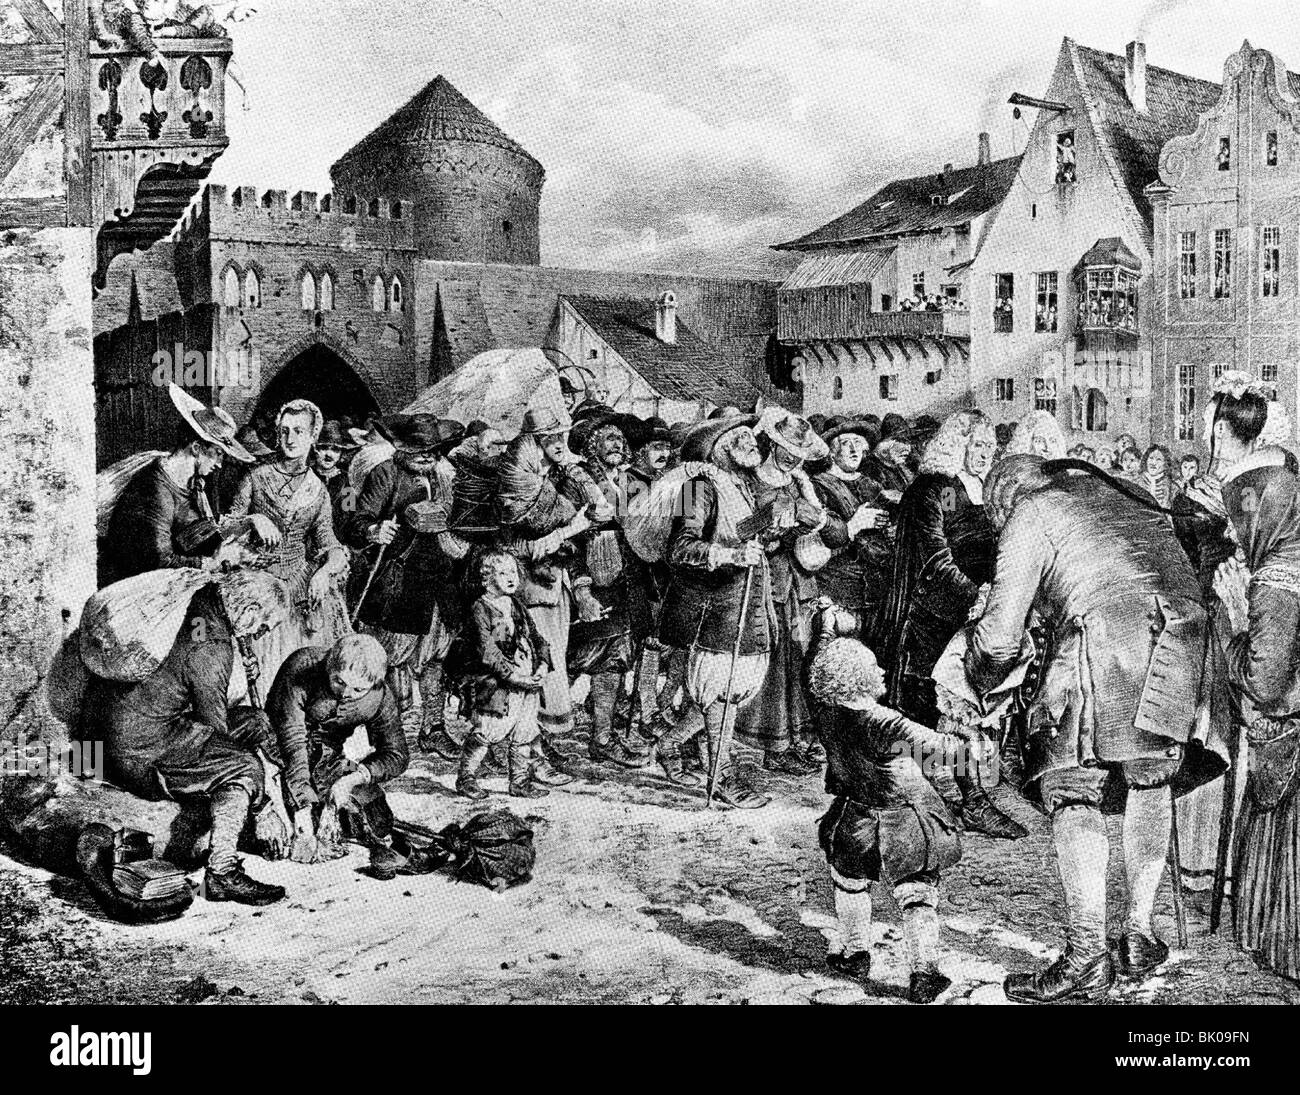 religion, Christianity, protestants, displacement of protestants at archbishopric Salzburg, 1732, arrival at Kaliningrad - Stock Image